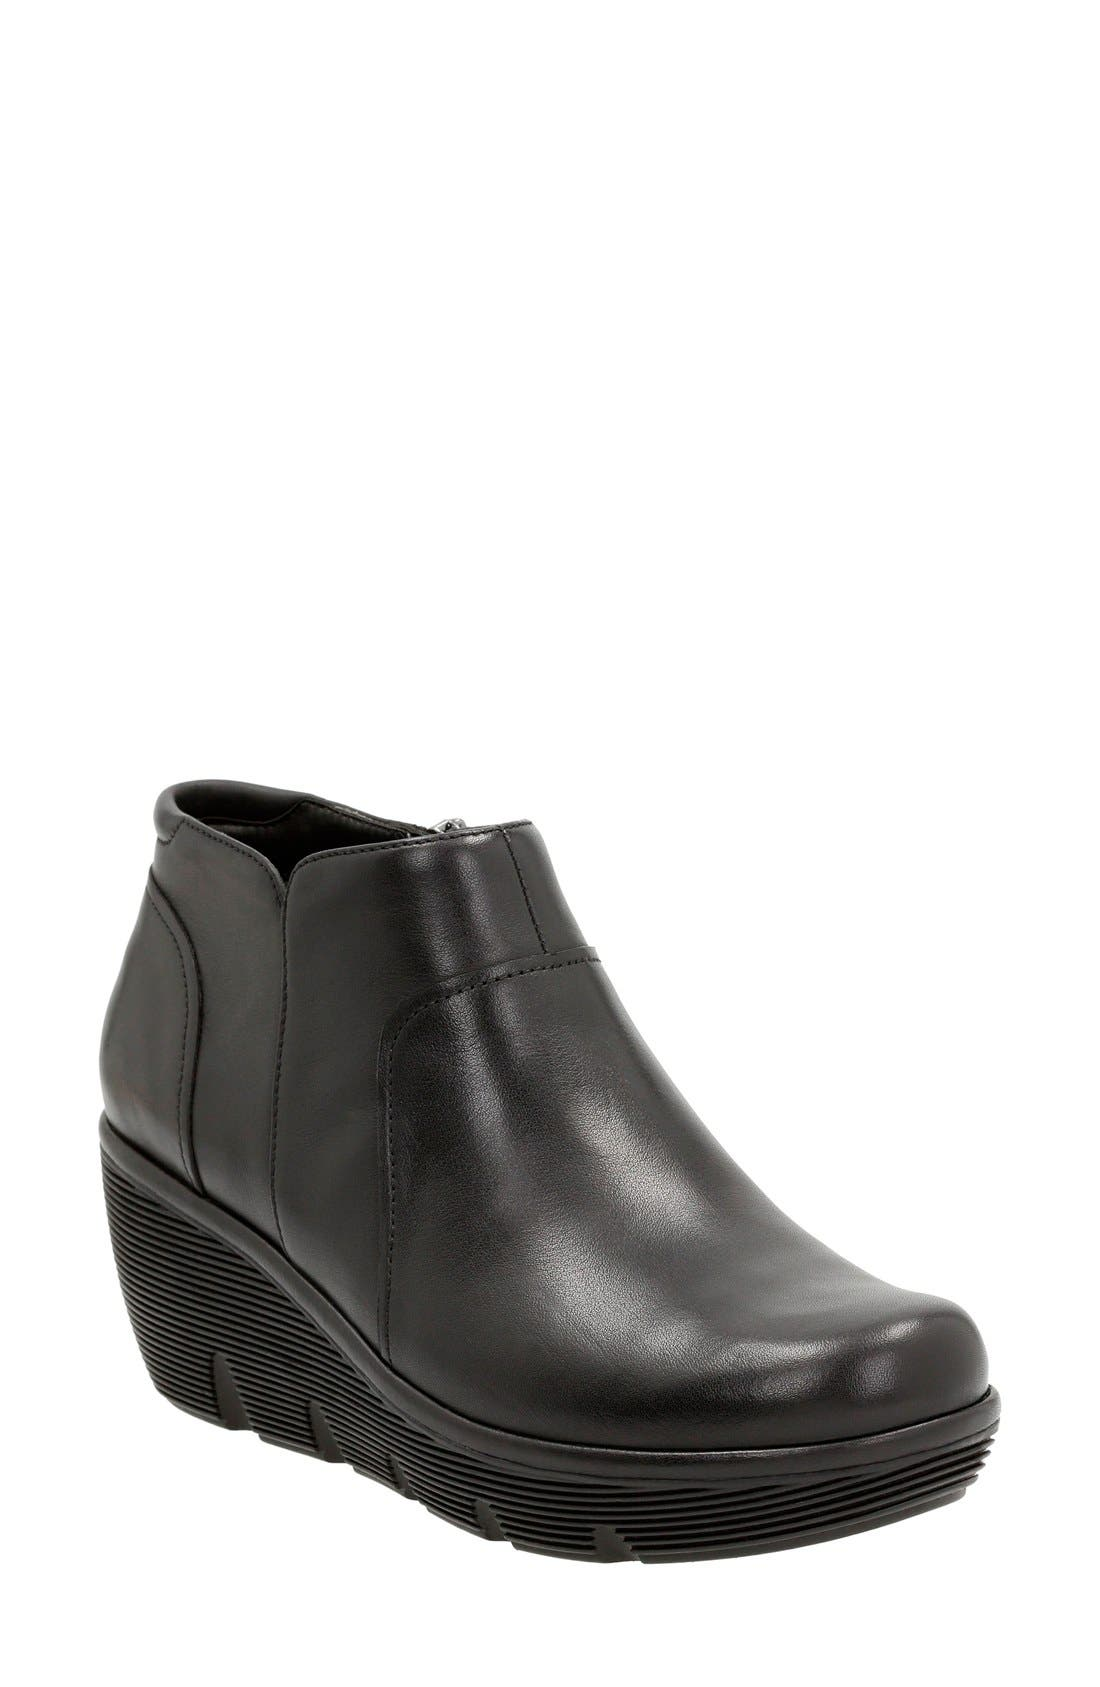 clarks wedge boots canada